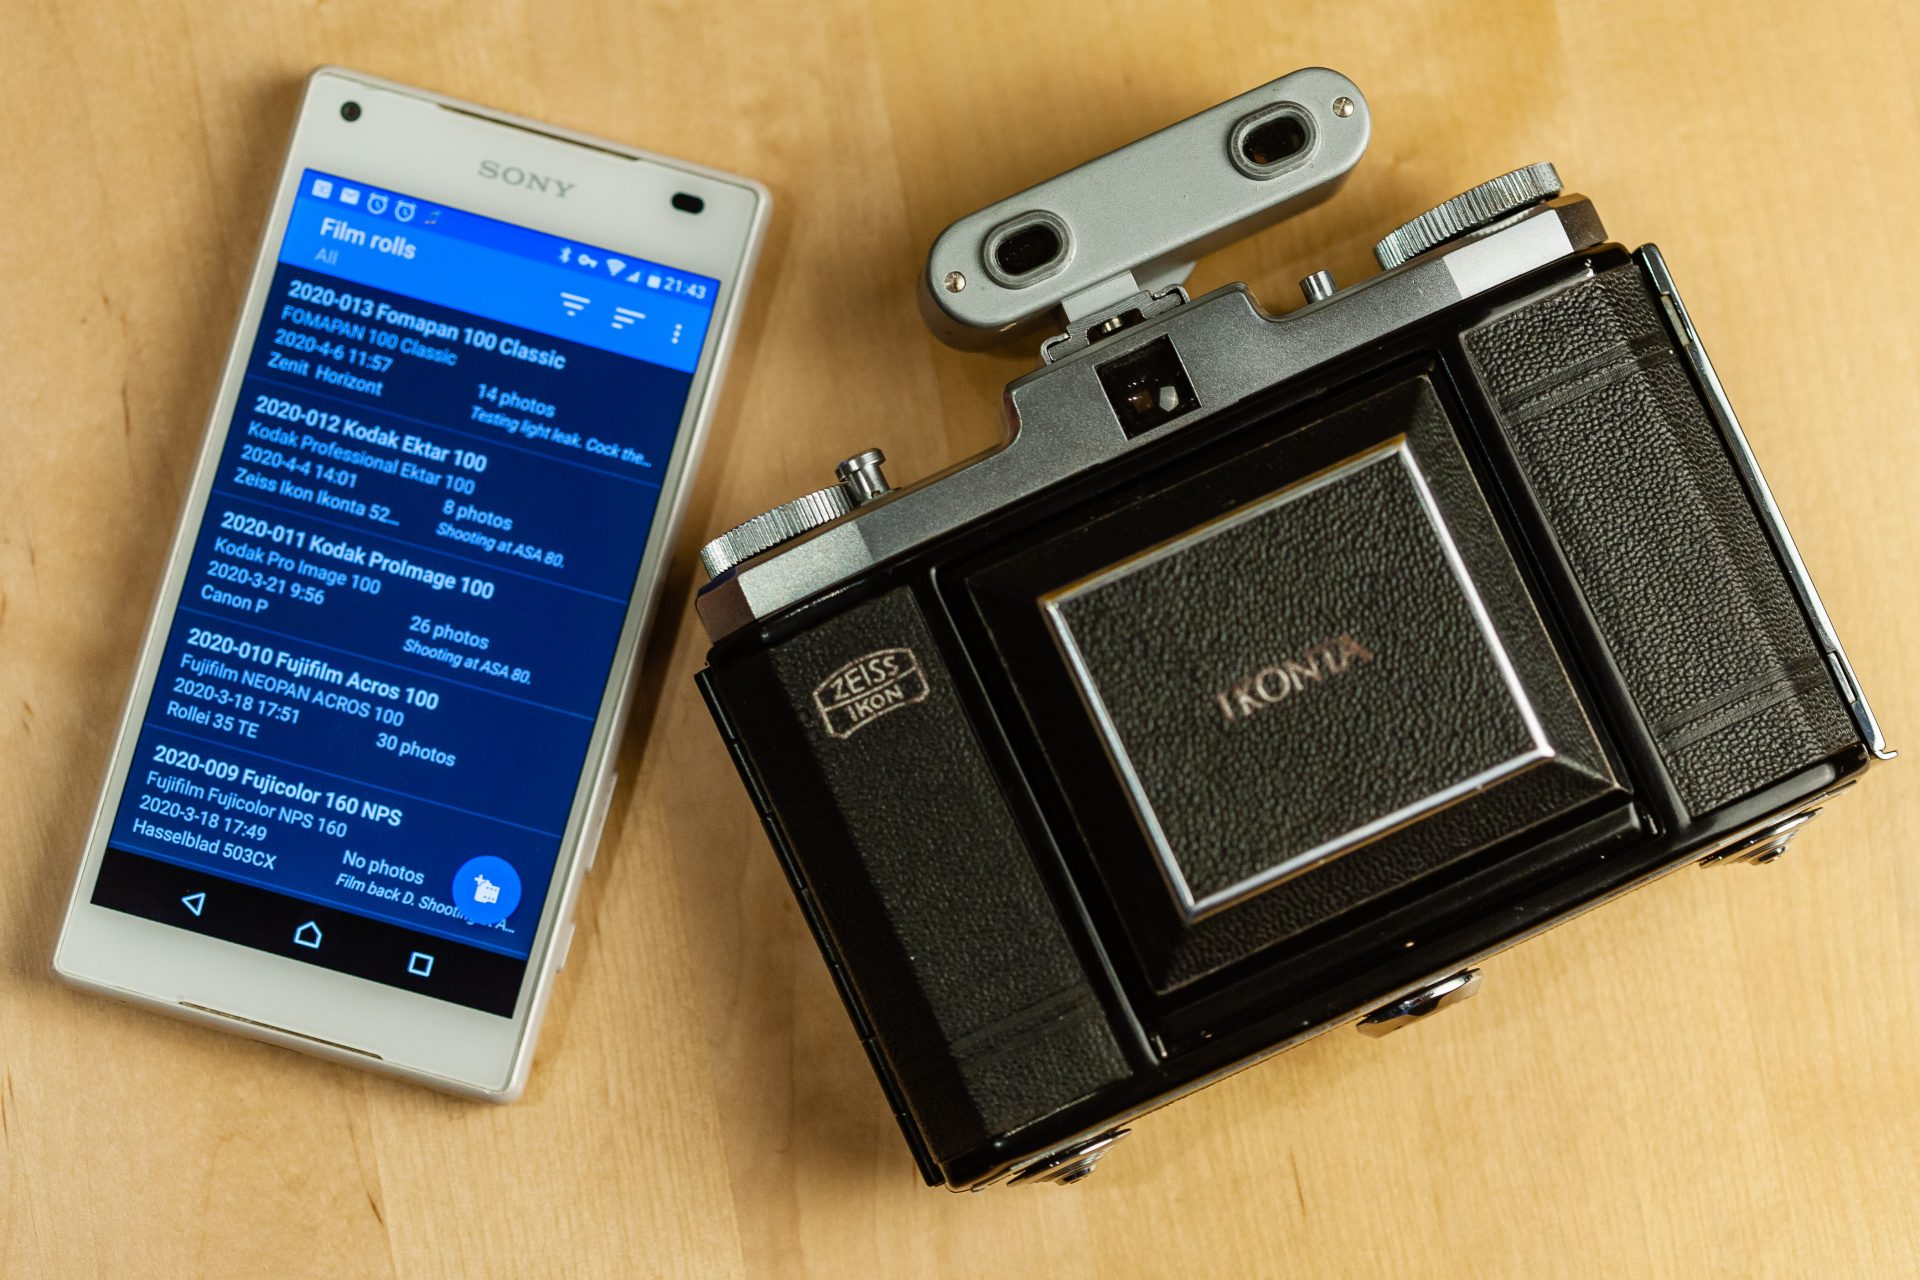 Exif Notes app on a smartphone together with an analog camera.